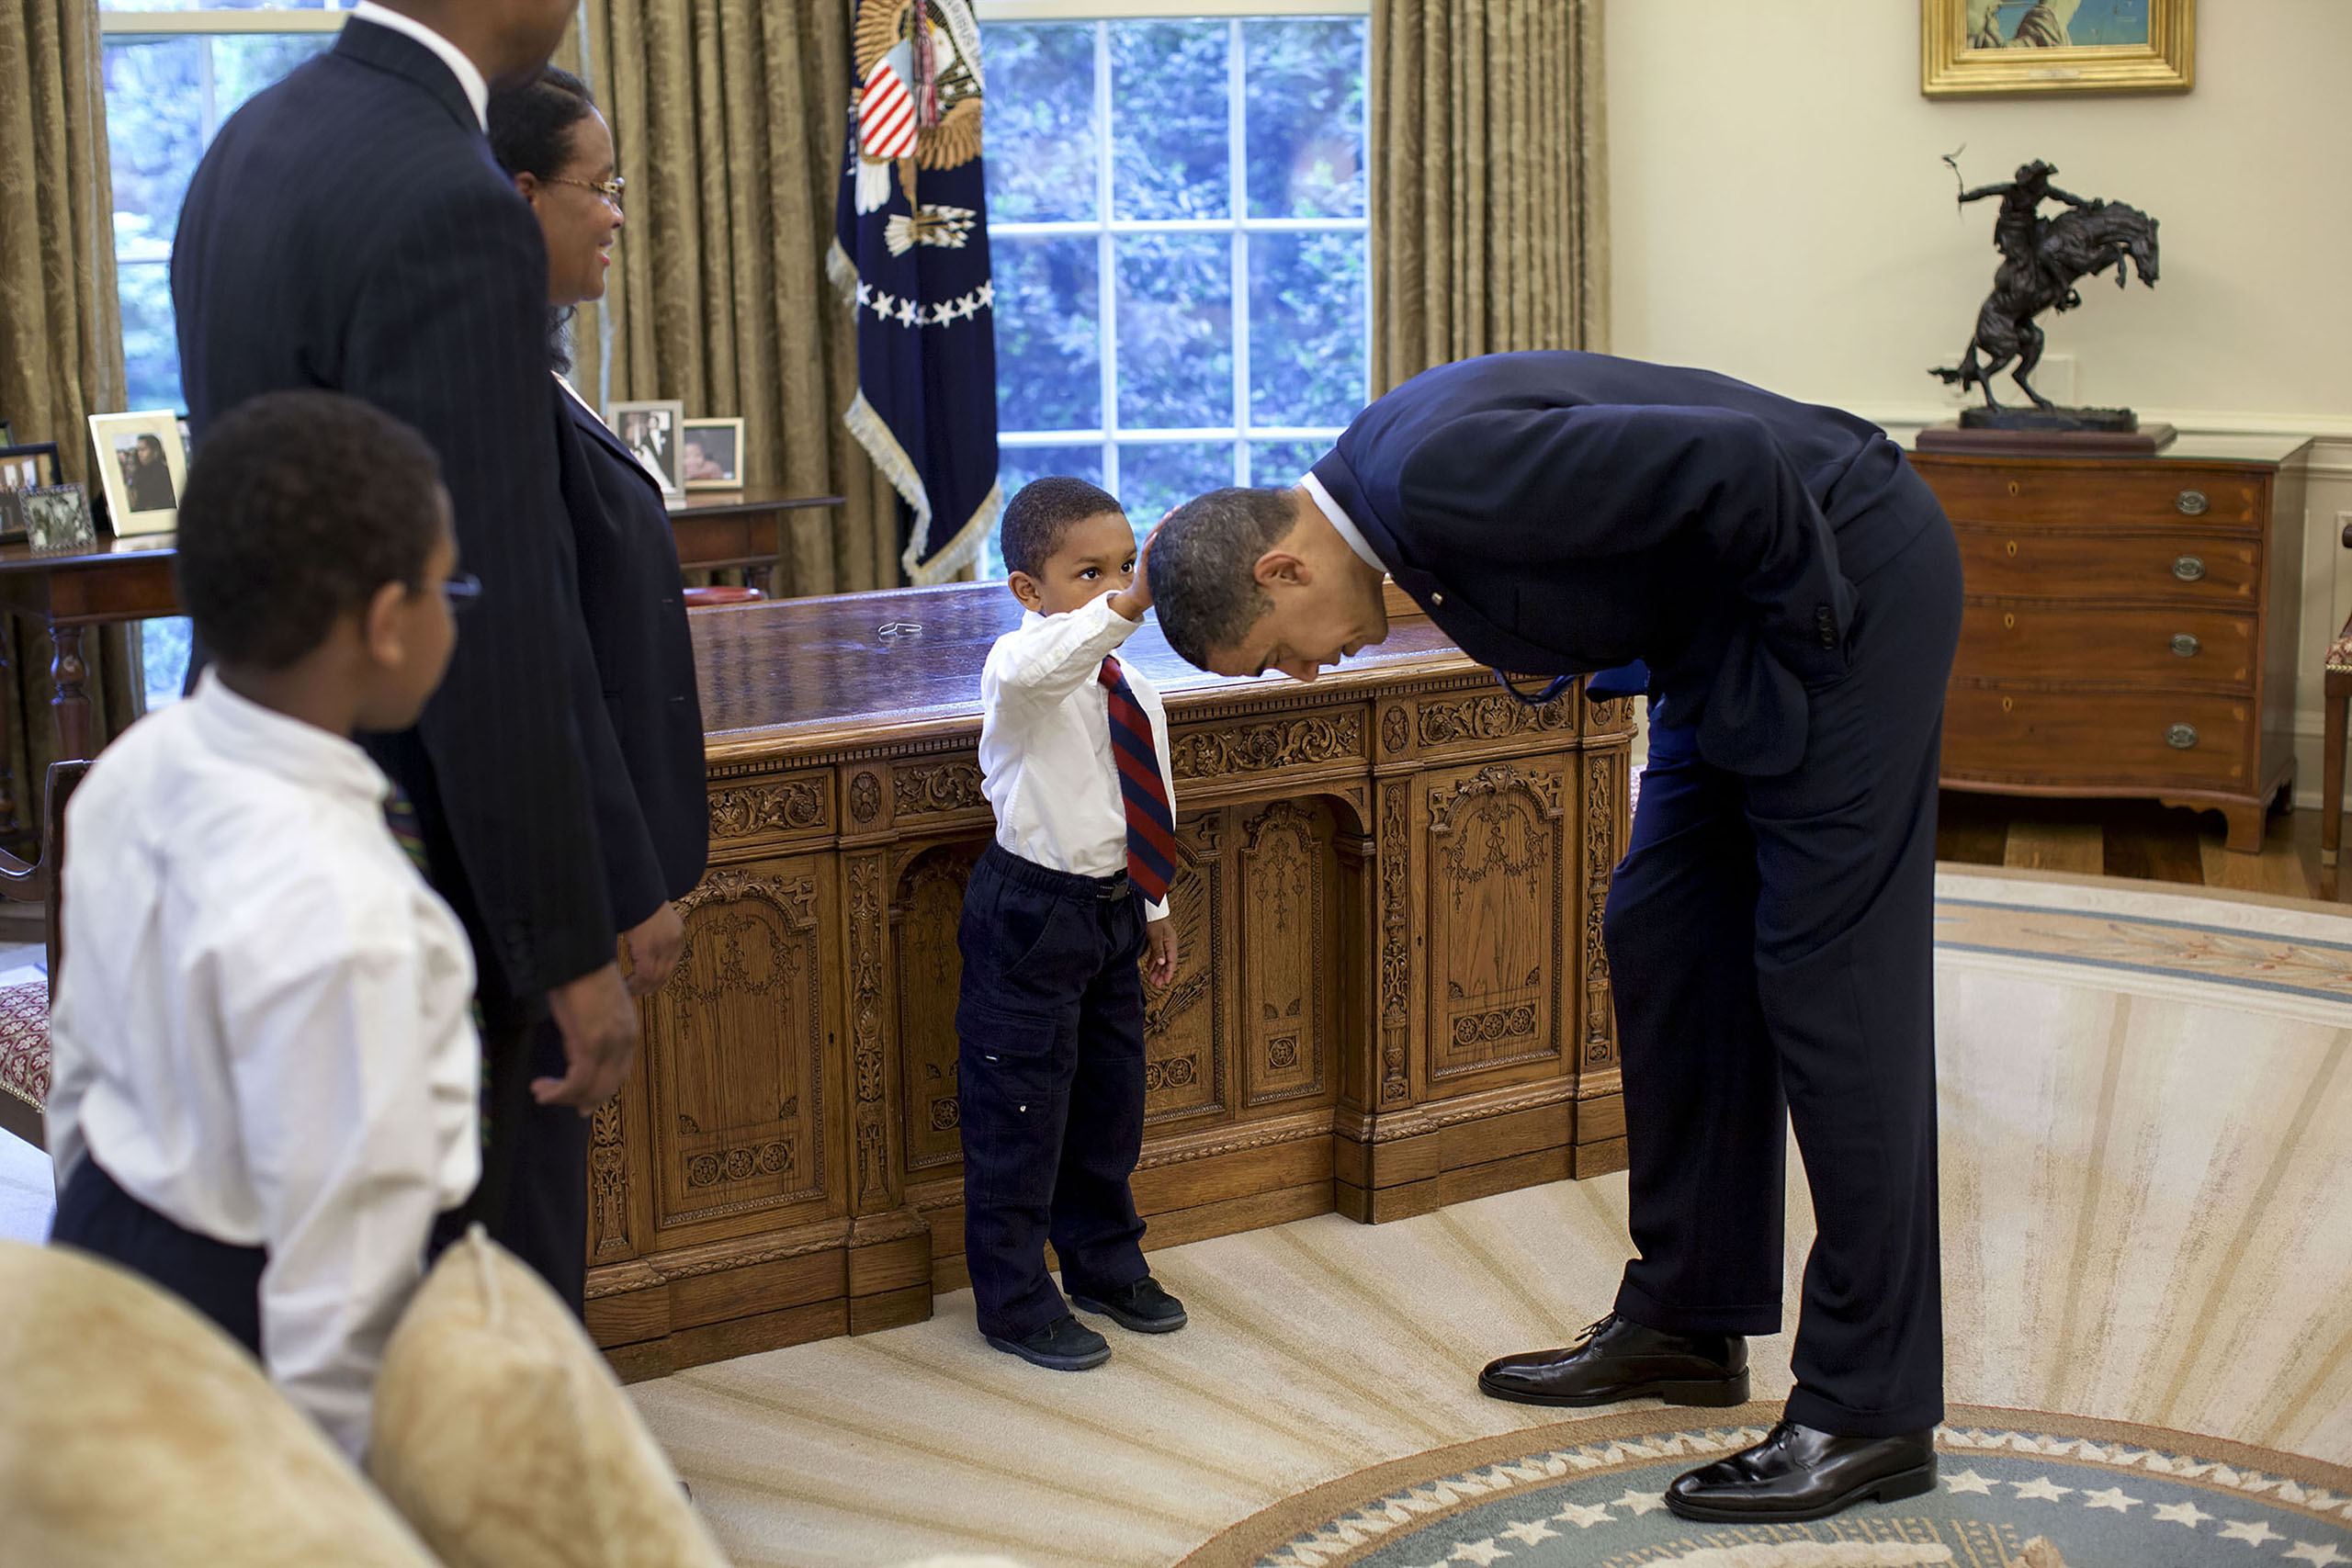 Obama bends over so Jacob Philadelphia, the son of a National Security staff member, can pat his head during a family visit to the Oval Office on May 8, 2009.